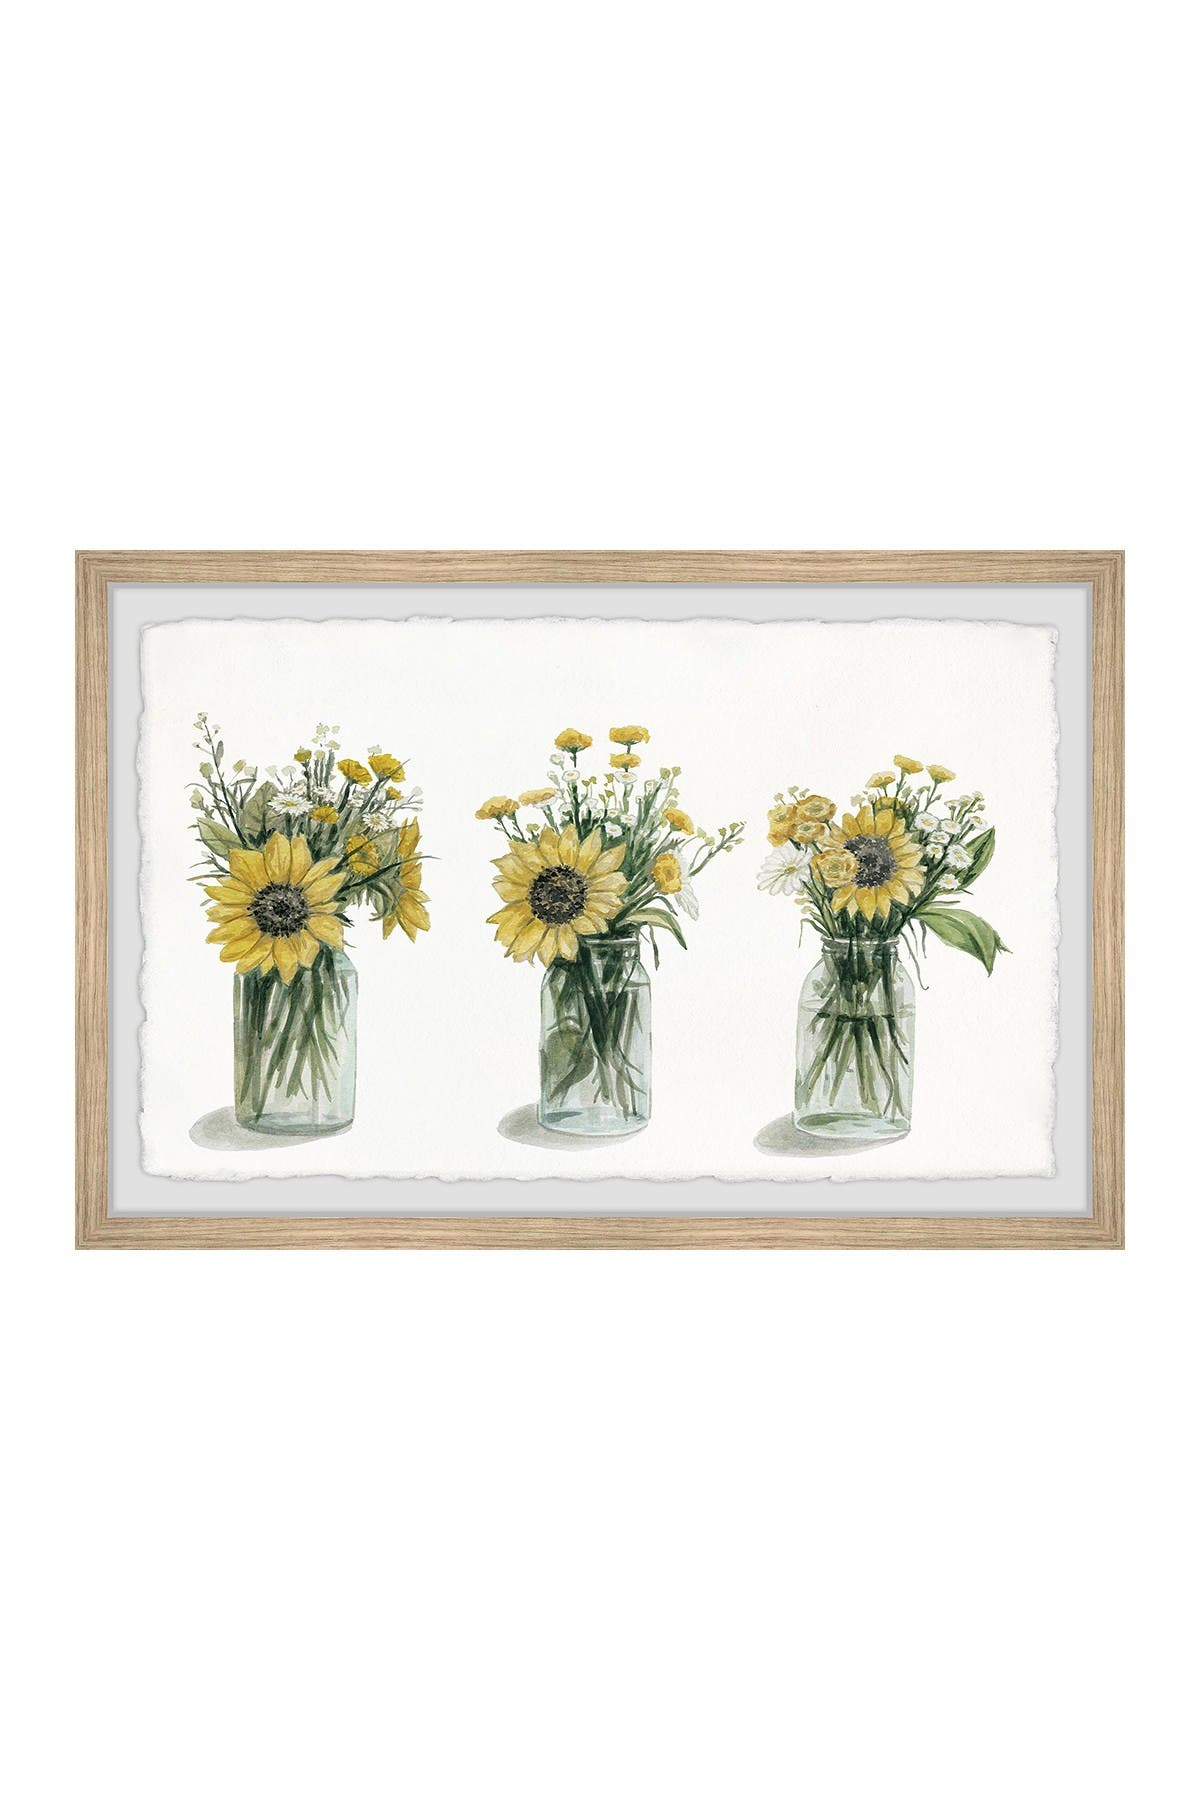 "Image of Marmont Hill Inc. Sunflowers Trio Framed Painting - 24"" x 16"""